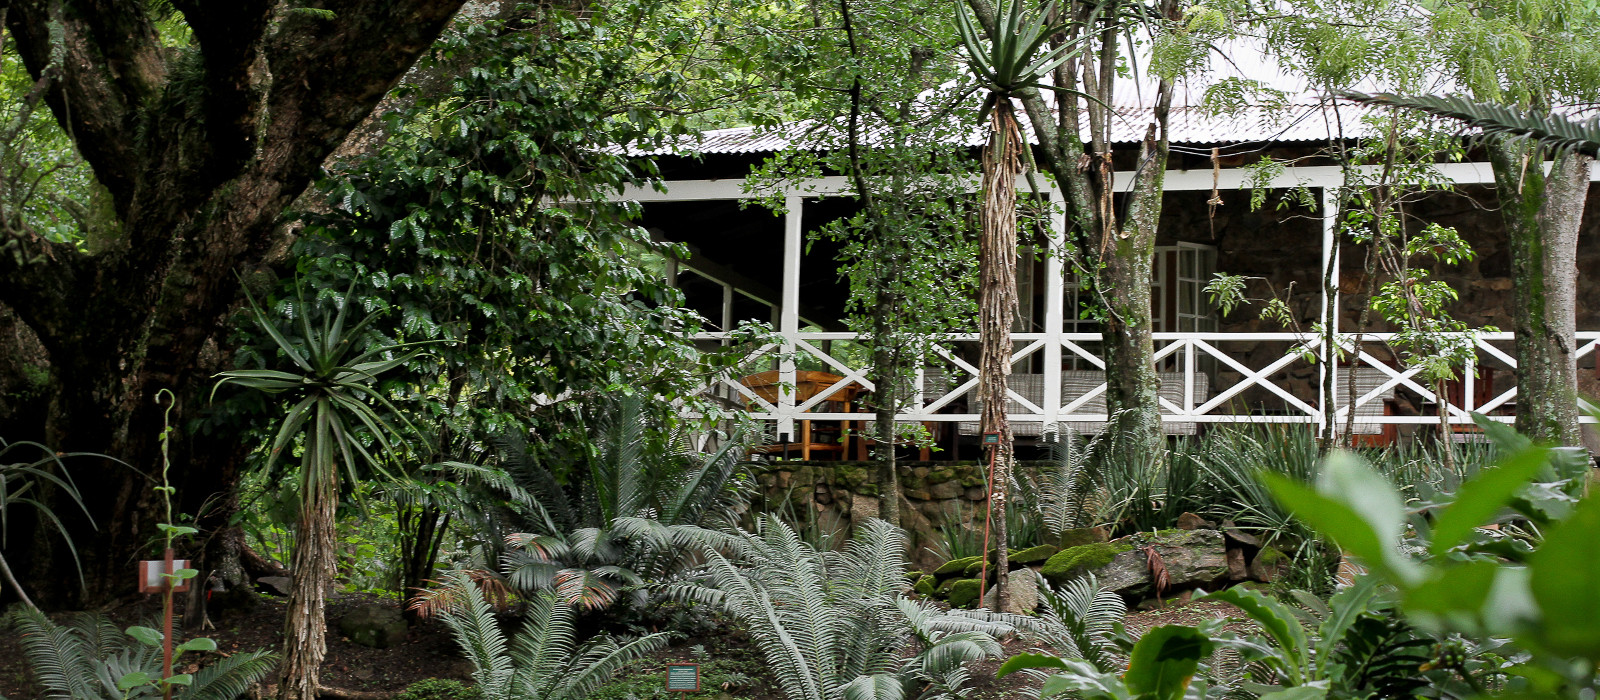 Hotel Reilly's Rock Hilltop Lodge Swasiland